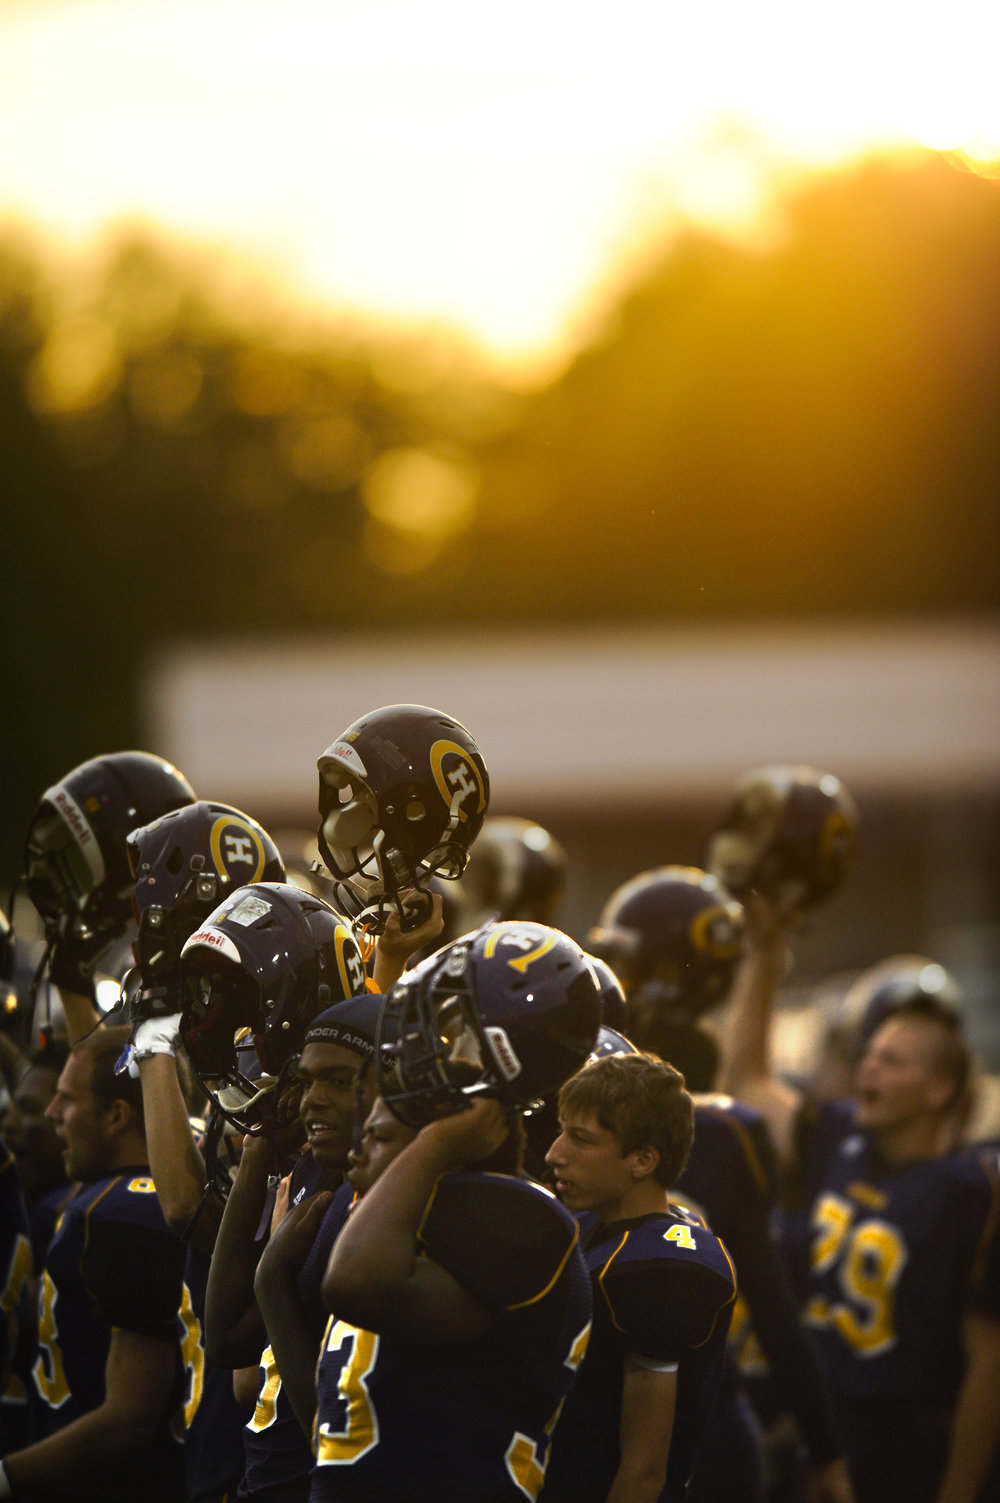 0023_090712 011a Football - HHS vs Sedalia ak.jpg